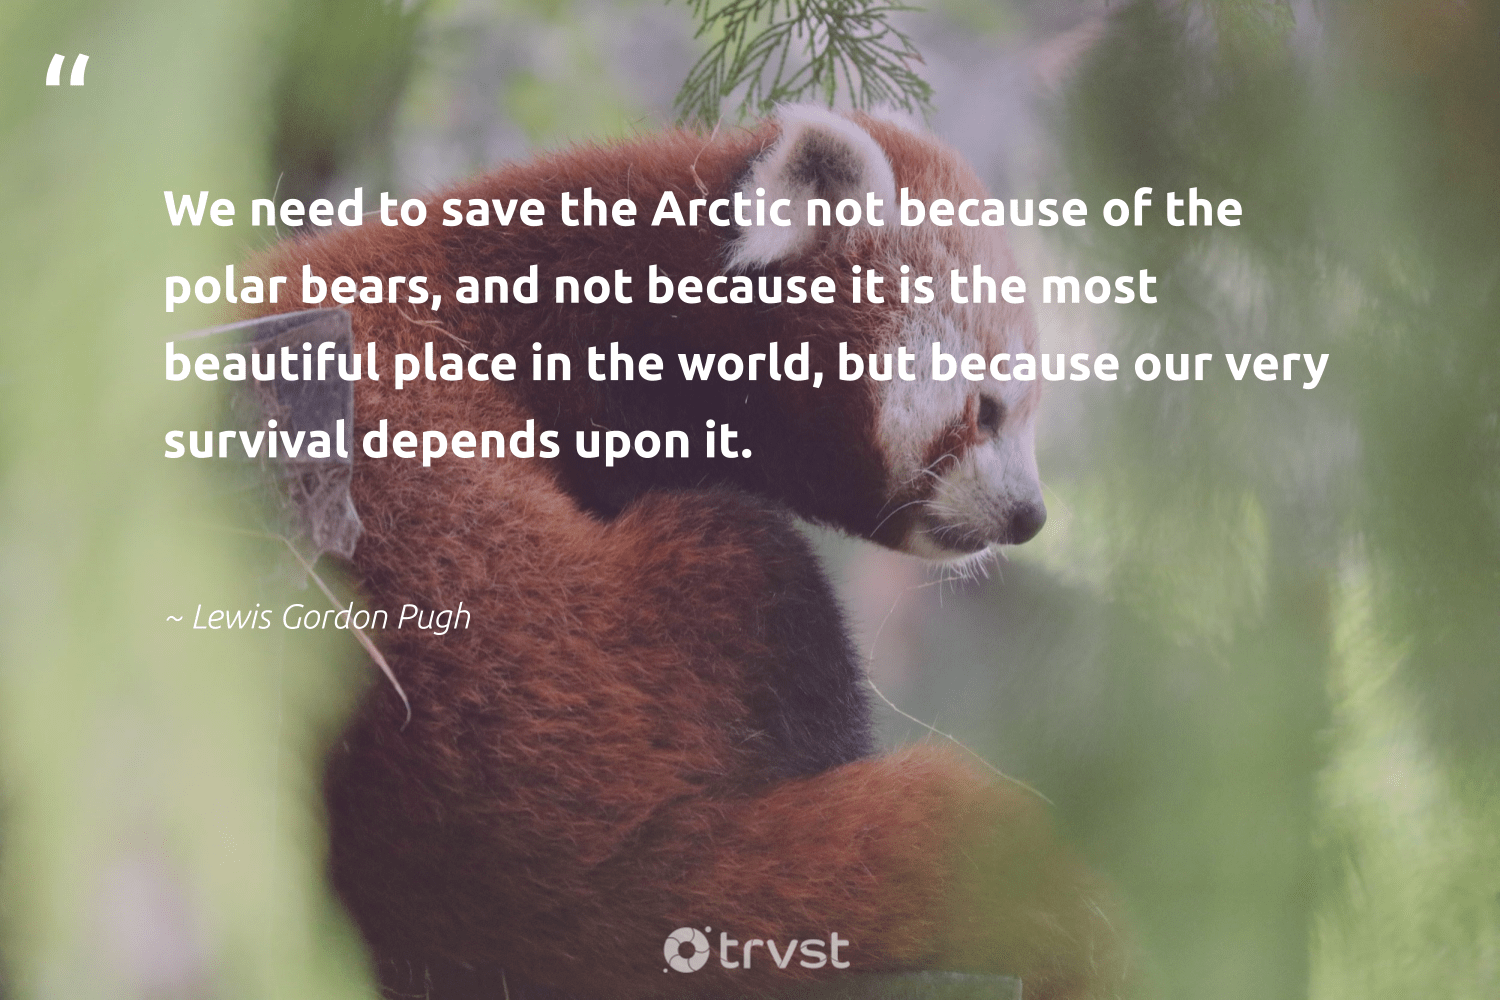 """""""We need to save the Arctic not because of the polar bears, and not because it is the most beautiful place in the world, but because our very survival depends upon it.""""  - Lewis Gordon Pugh #trvst #quotes #arctic #bears #animalphotography #dotherightthing #sustainability #takeaction #bearlove #dogood #ourplanetdaily #socialchange"""